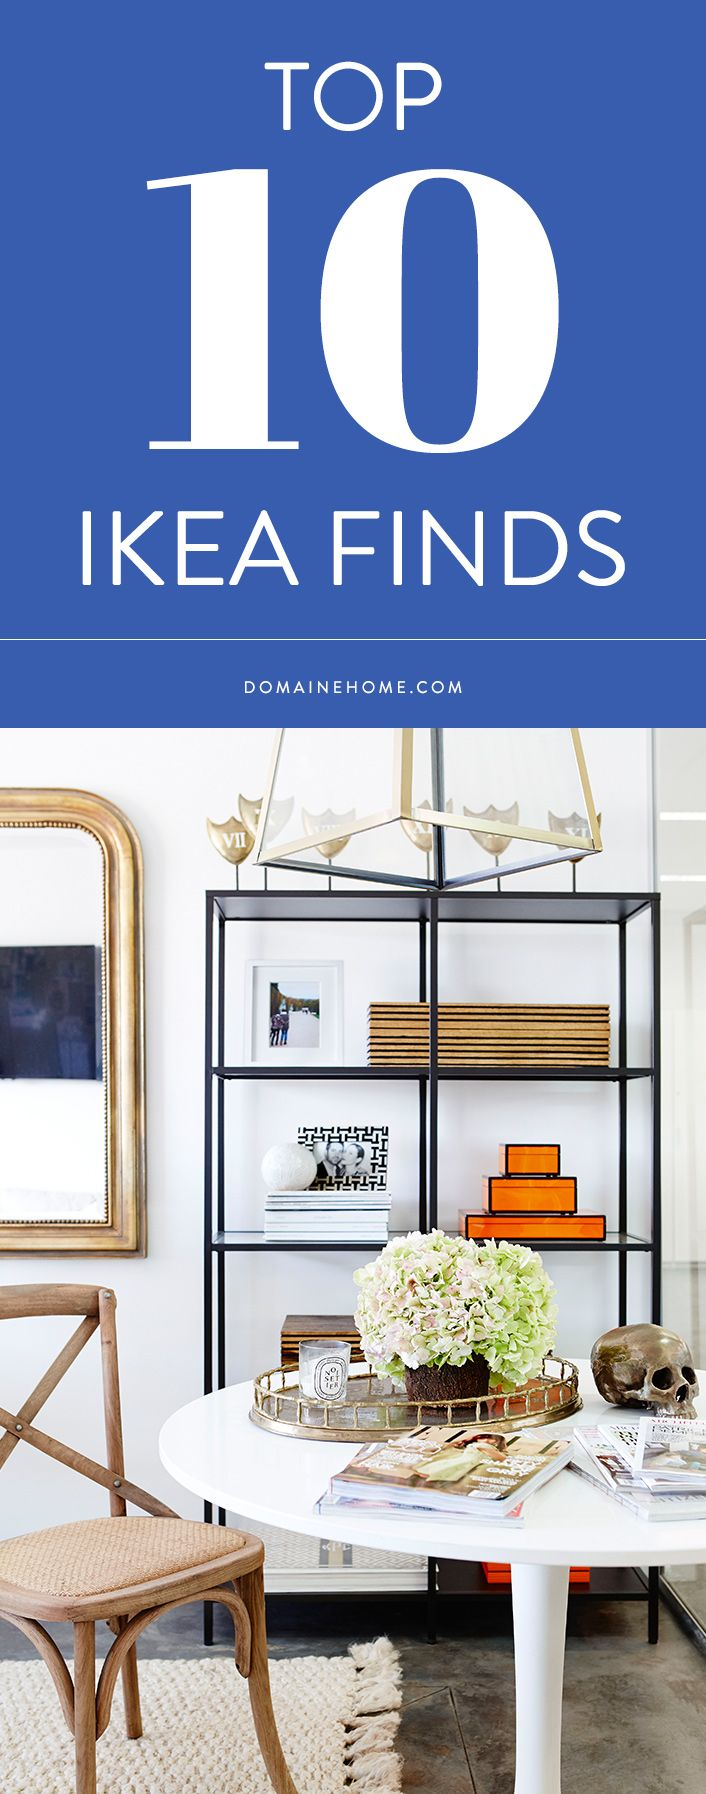 The best, most versatile and bang-for-your-buck IKEA pieces to purchase.